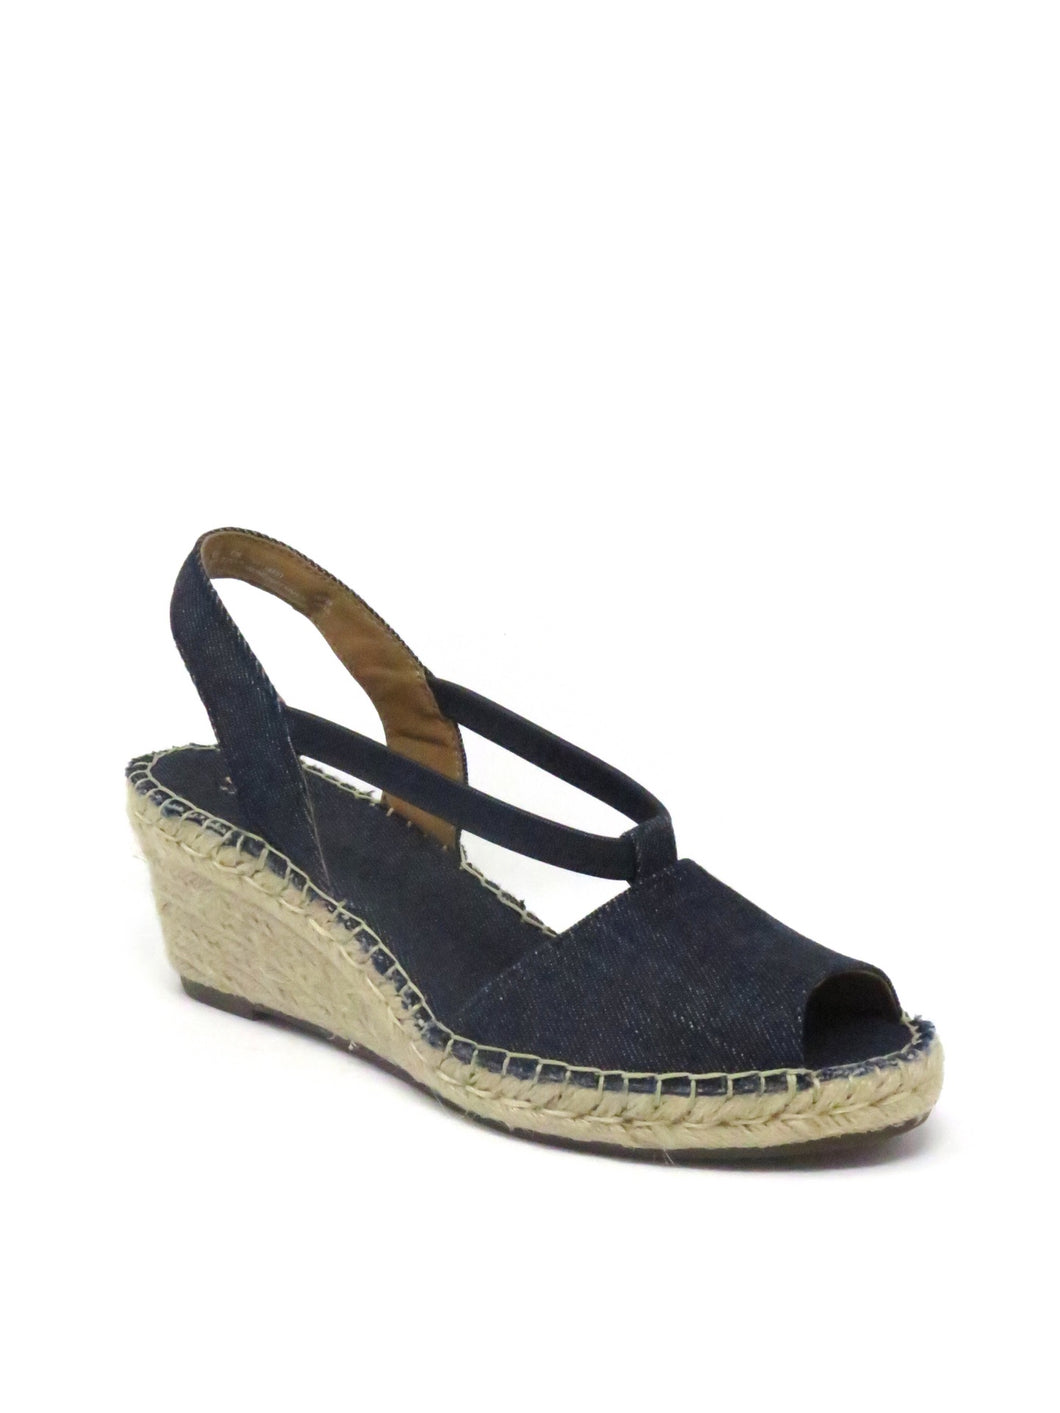 Clarks | 14727 | Petrina LuLu | Denim Blue